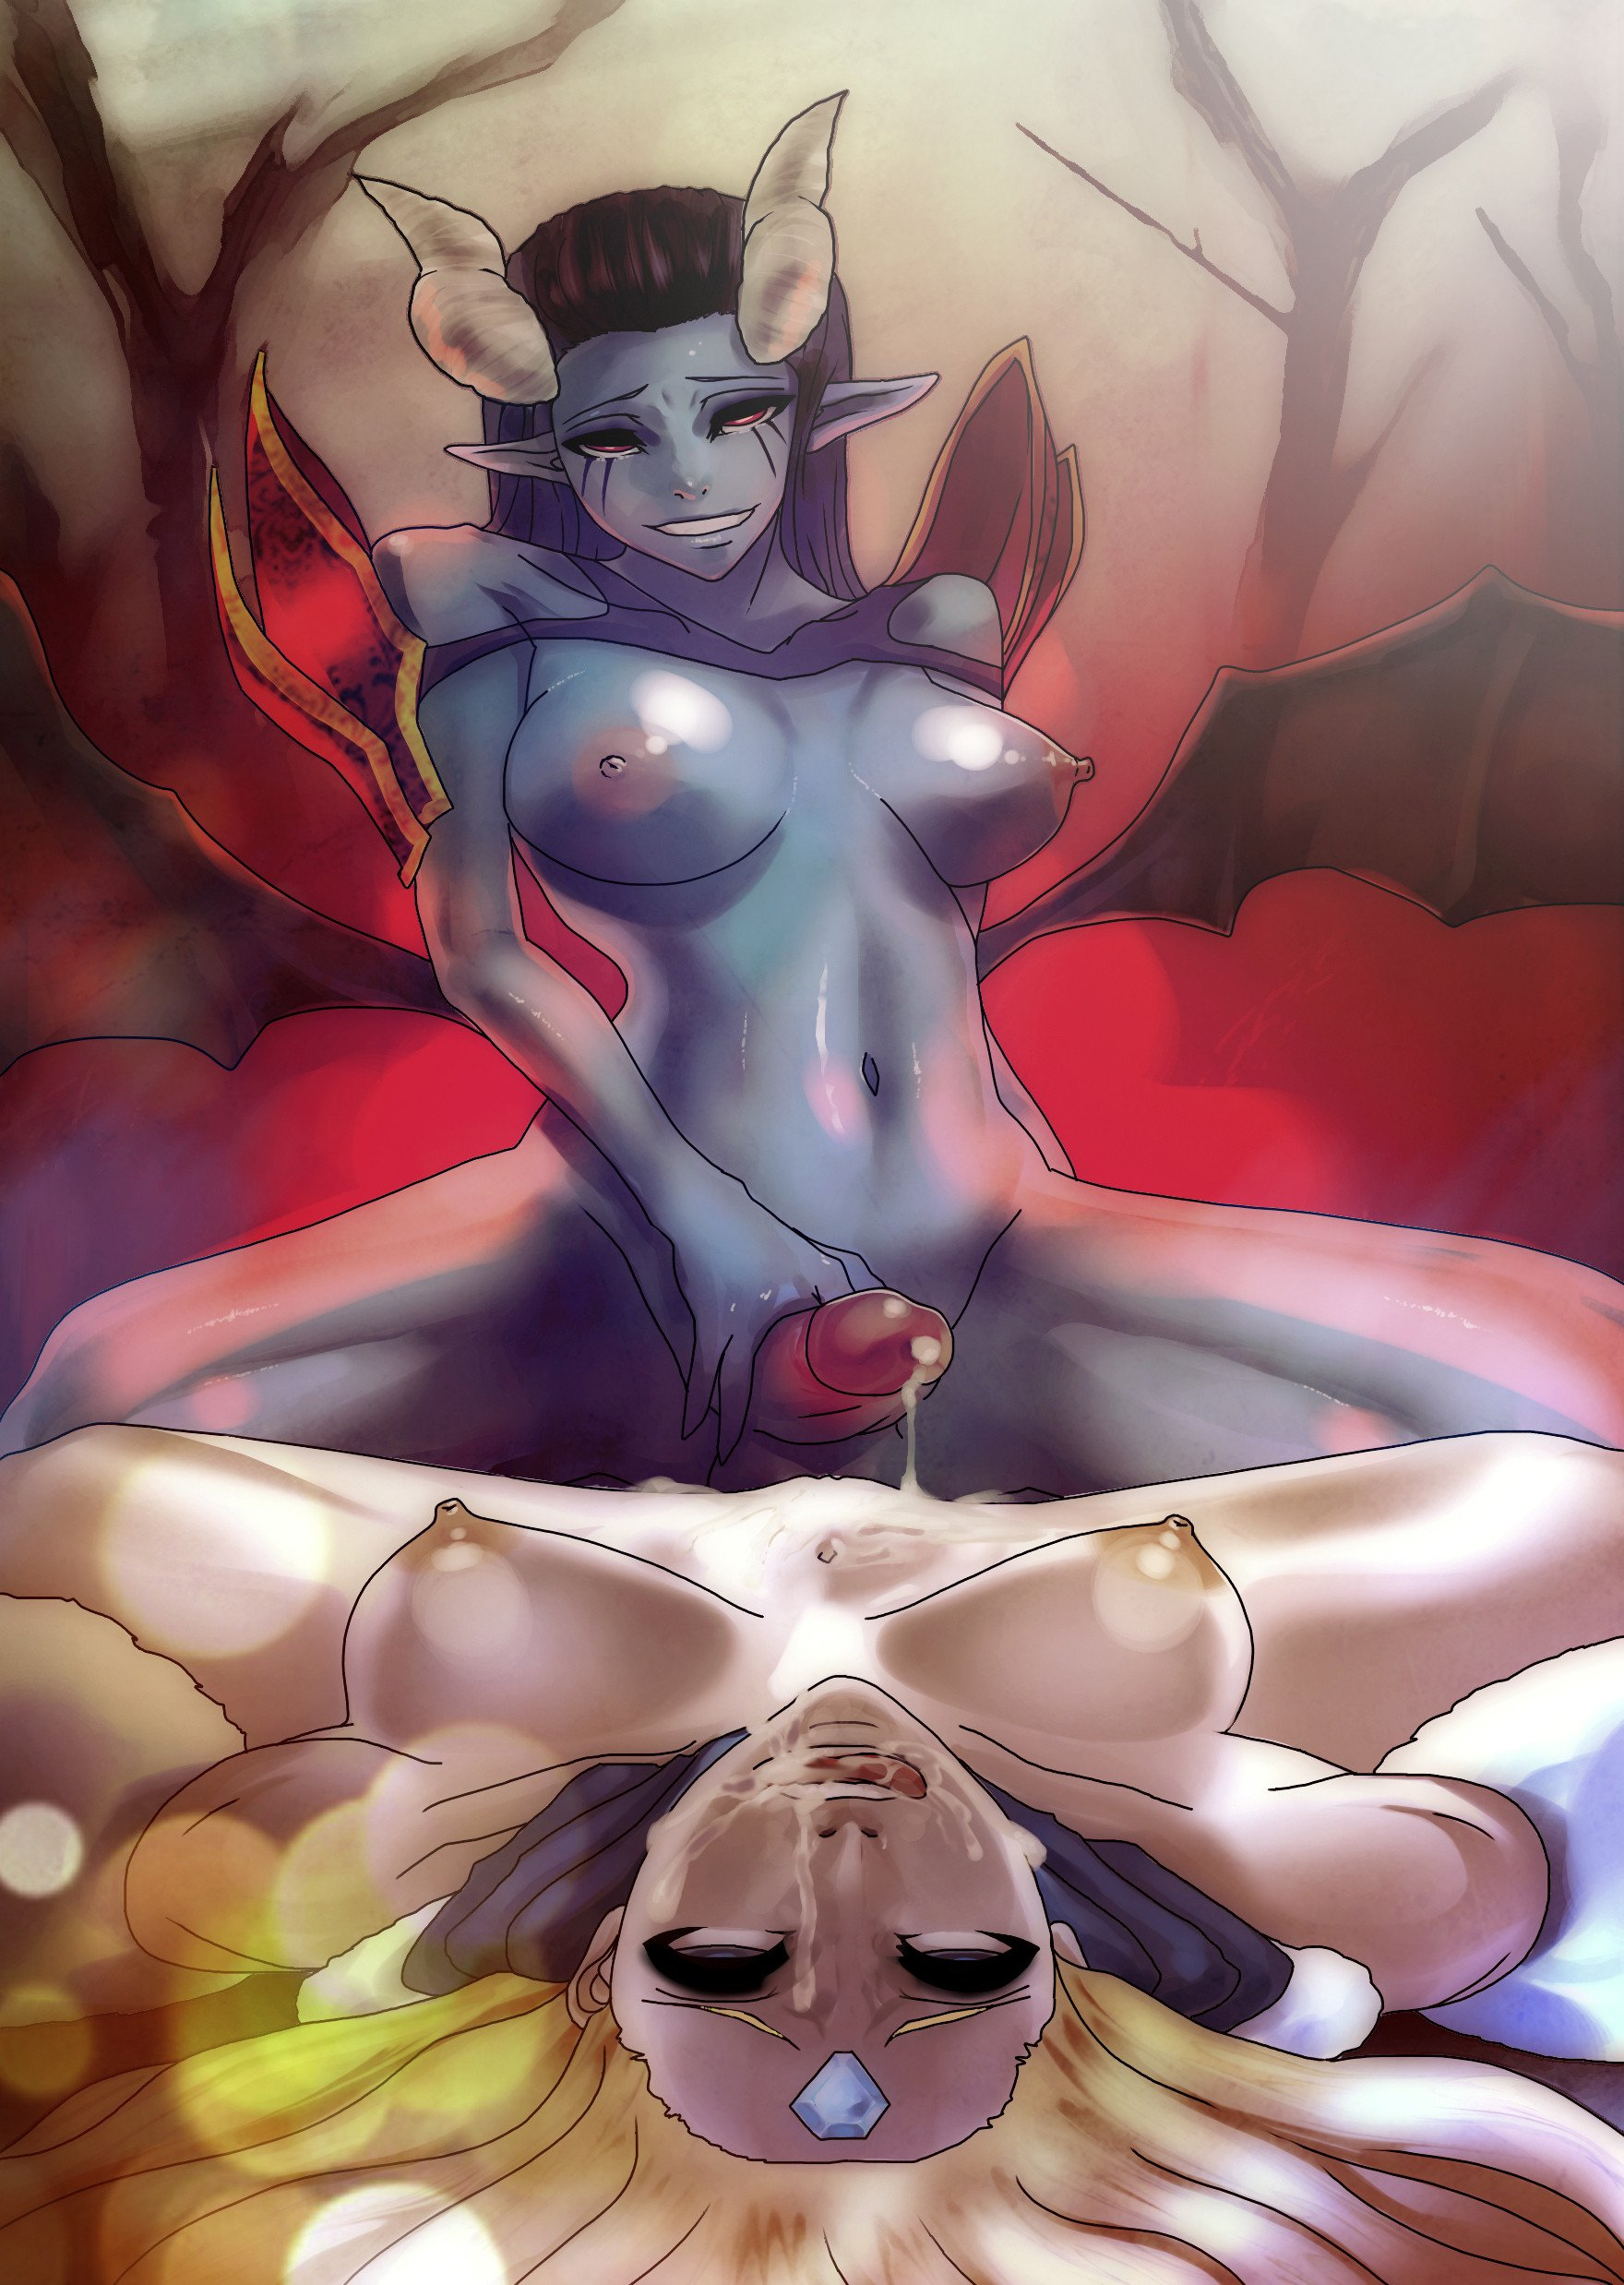 Dota sex manga nackt videos